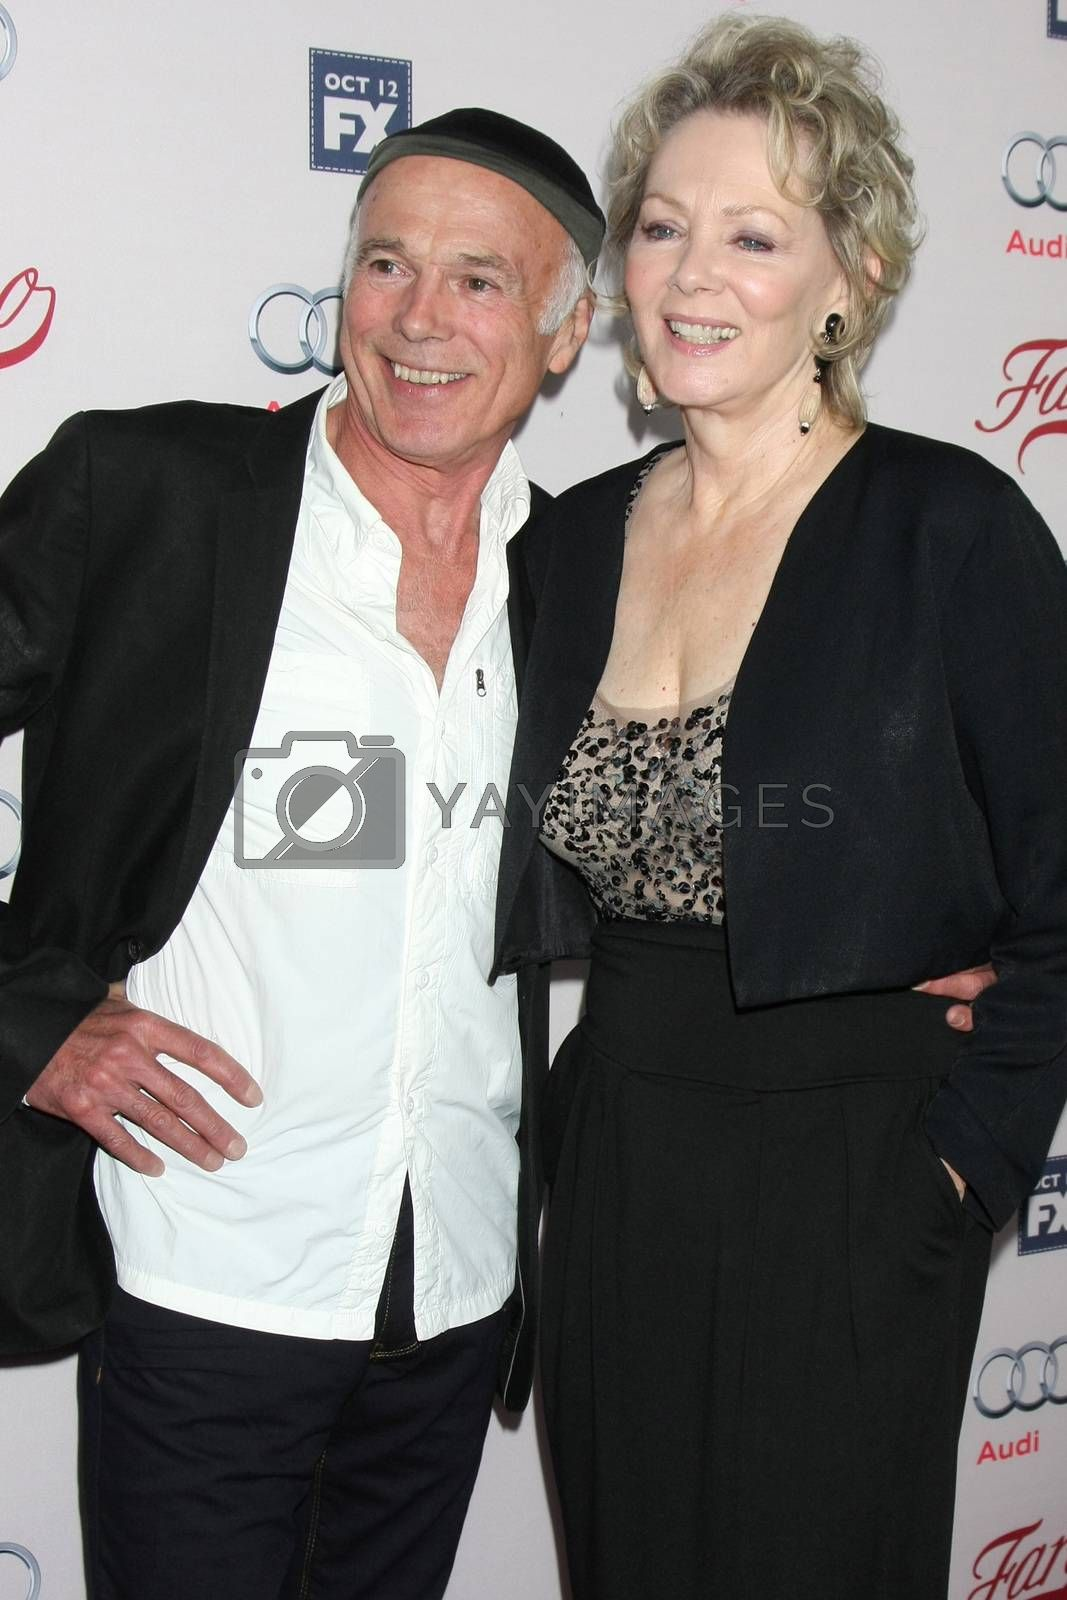 """Michael Hogan, Jean Smart at the """"Fargo"""" Season 2 Premiere Screening, ArcLight, Hollywood, CA 10-07-15/ImageCollect by ImageCollect"""